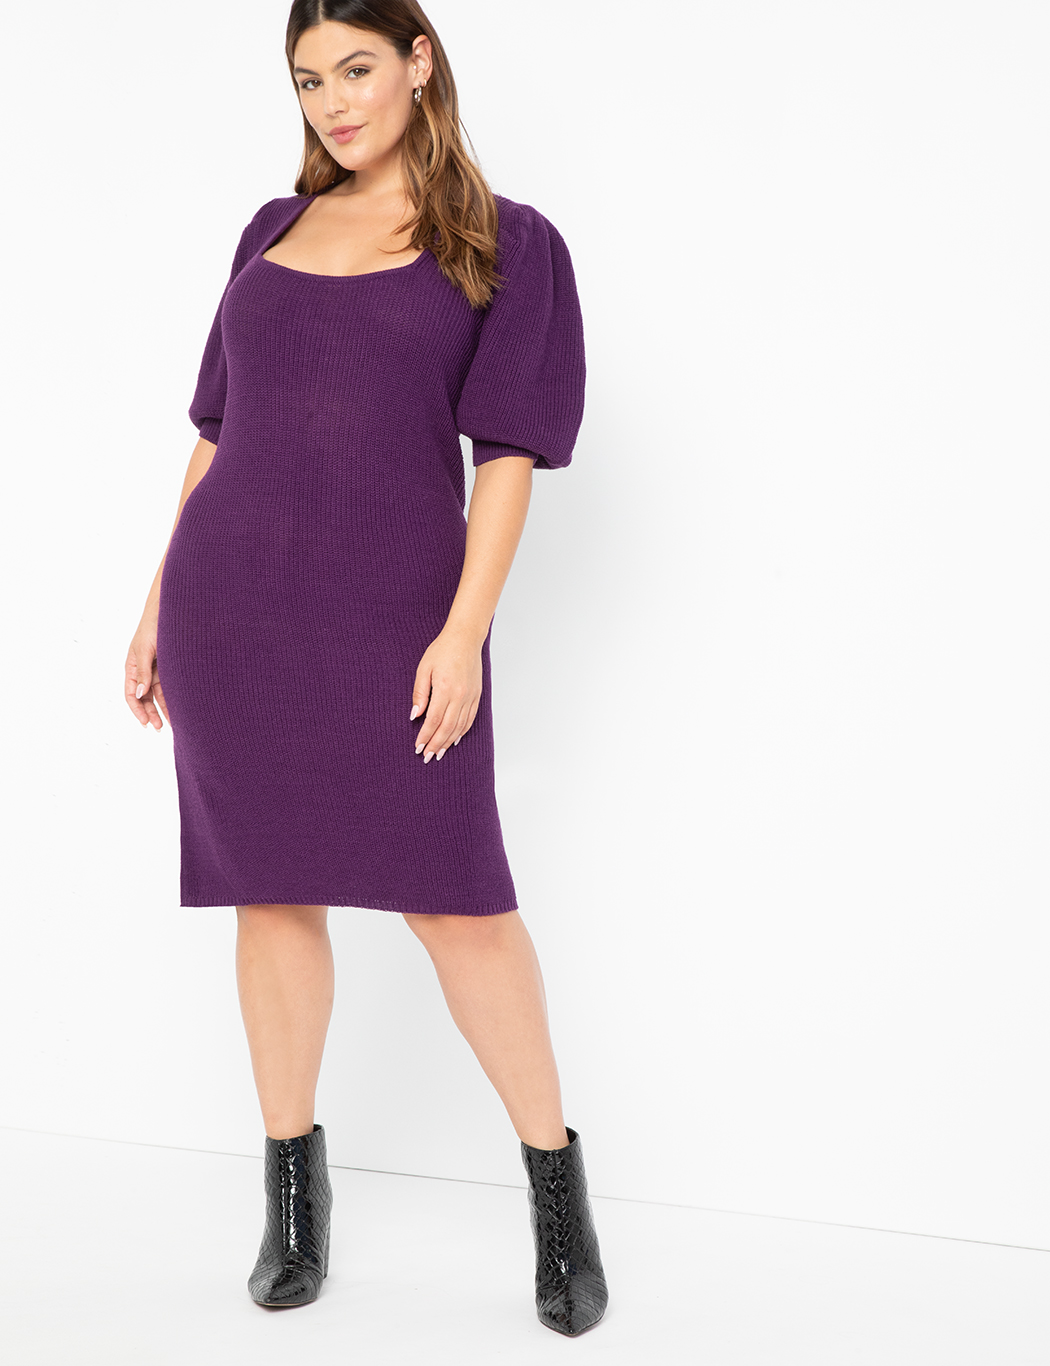 ELOQUII Elements Square Neck Sweater Midi Dress